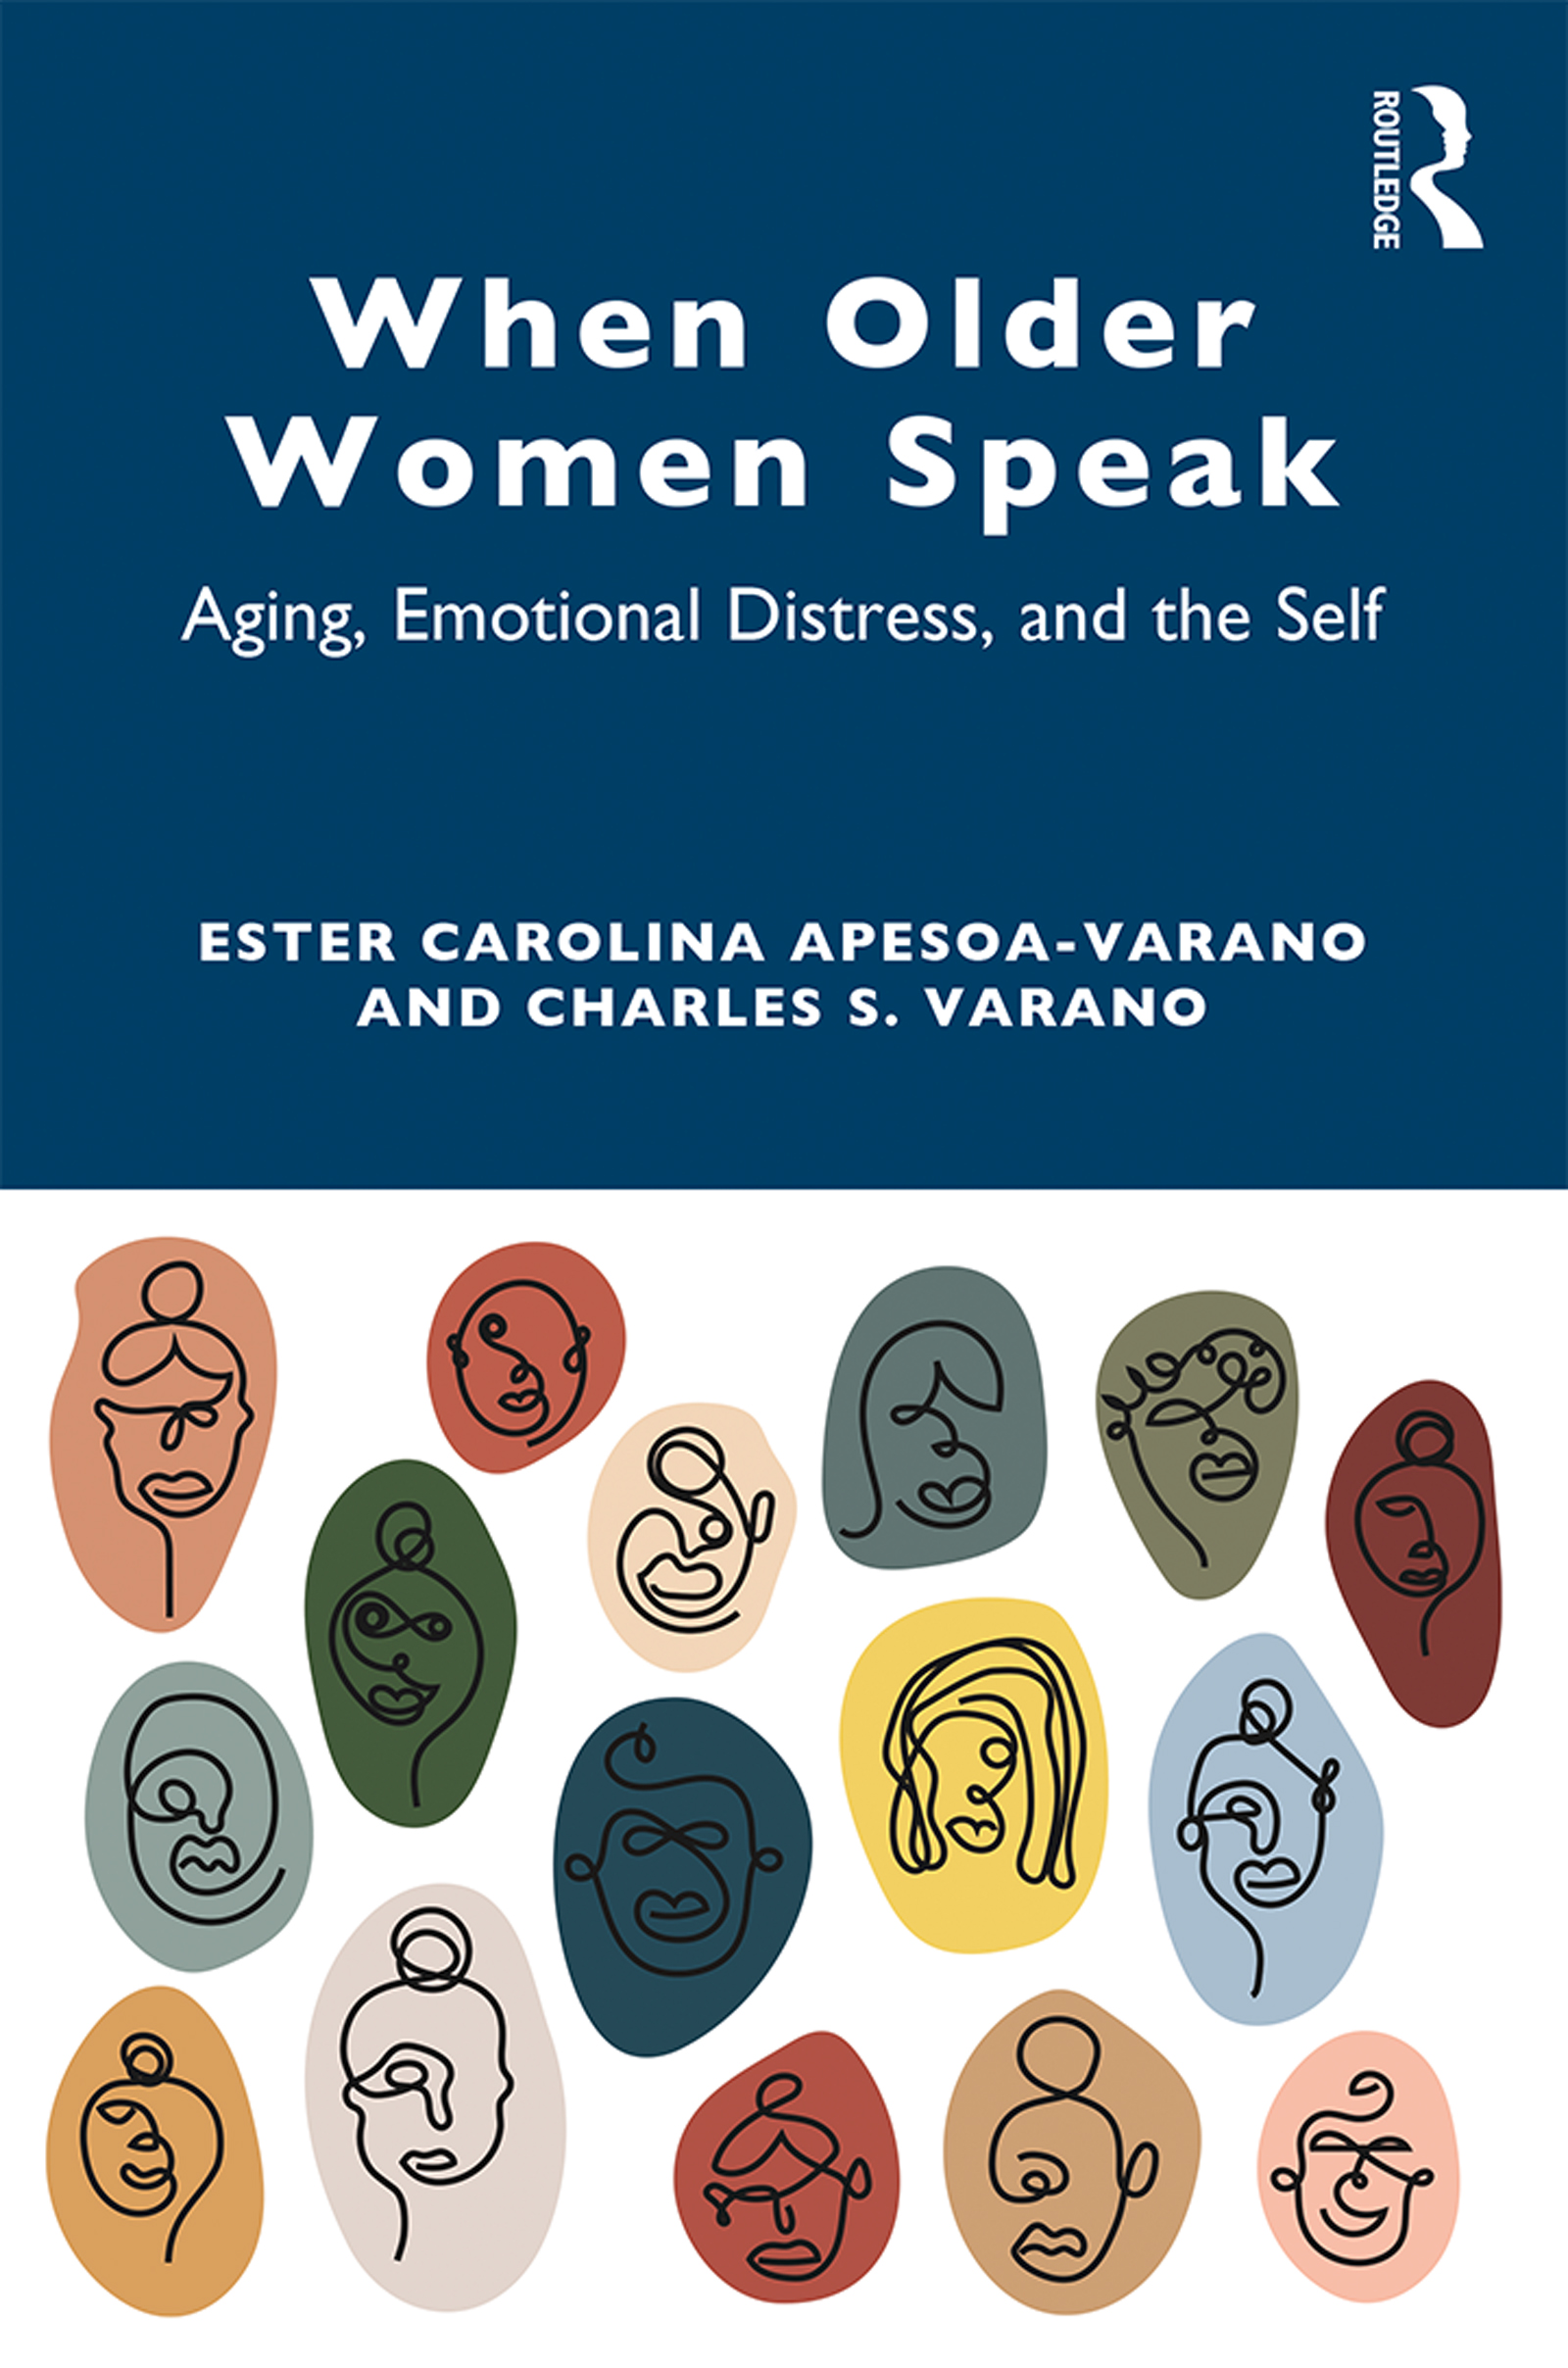 When Older Women Speak Aging, Emotional Distress, and the Self book cover